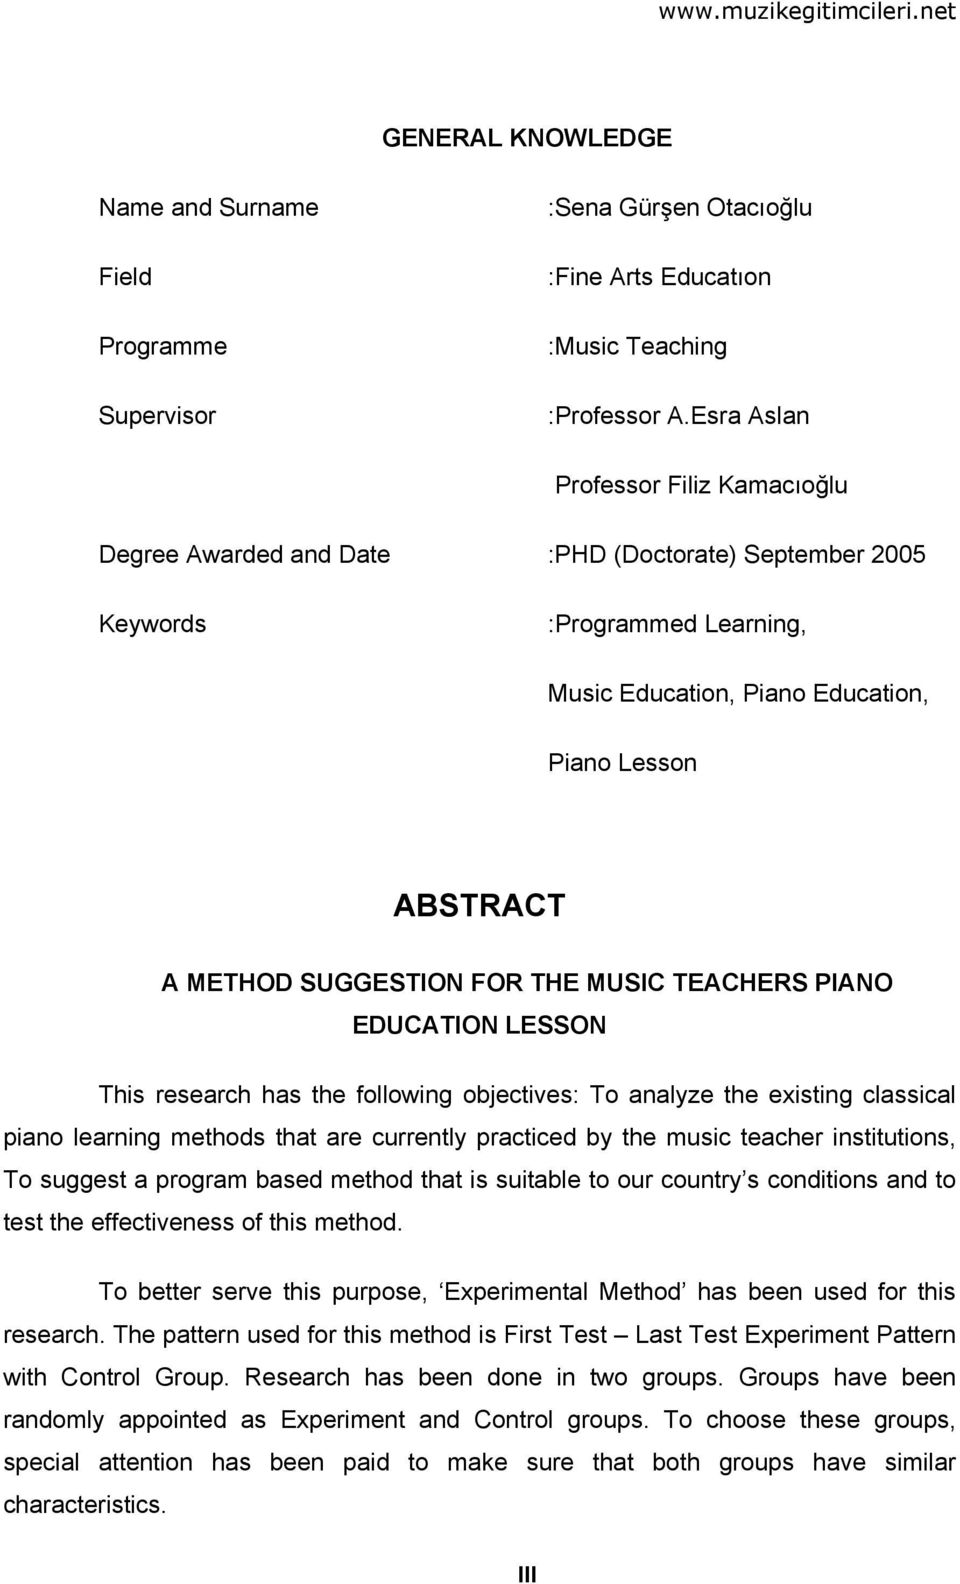 SUGGESTION FOR THE MUSIC TEACHERS PIANO EDUCATION LESSON This research has the following objectives: To analyze the existing classical piano learning methods that are currently practiced by the music